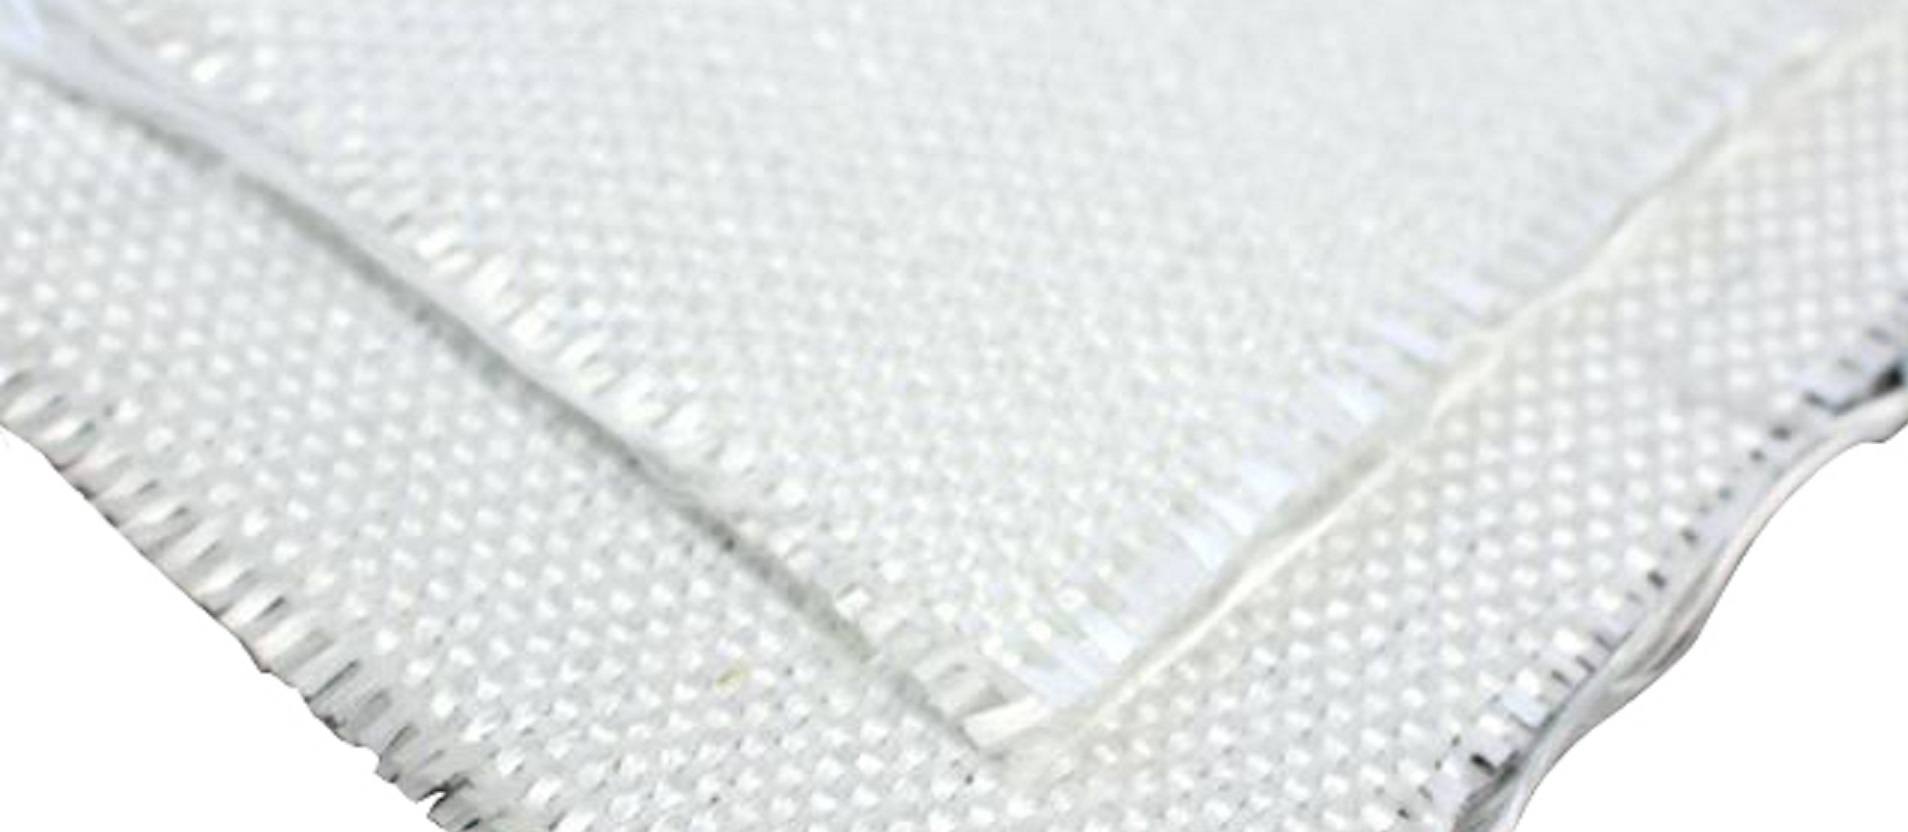 Fiberglass Lagging Cloth A Flame Resistant And Heat